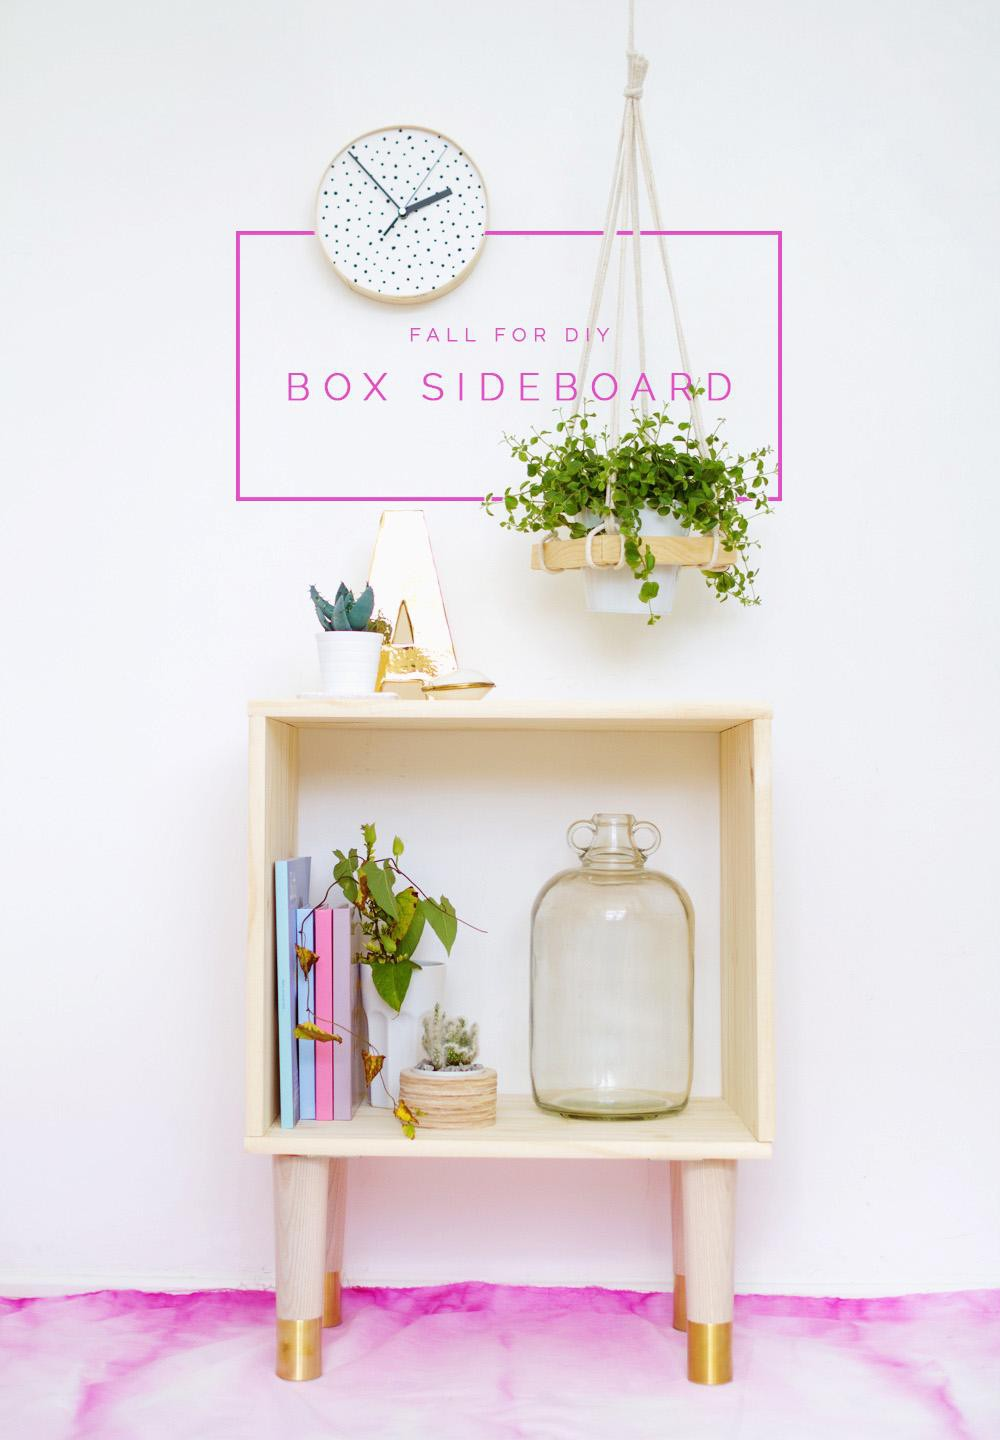 15. DIY Box Sideboard